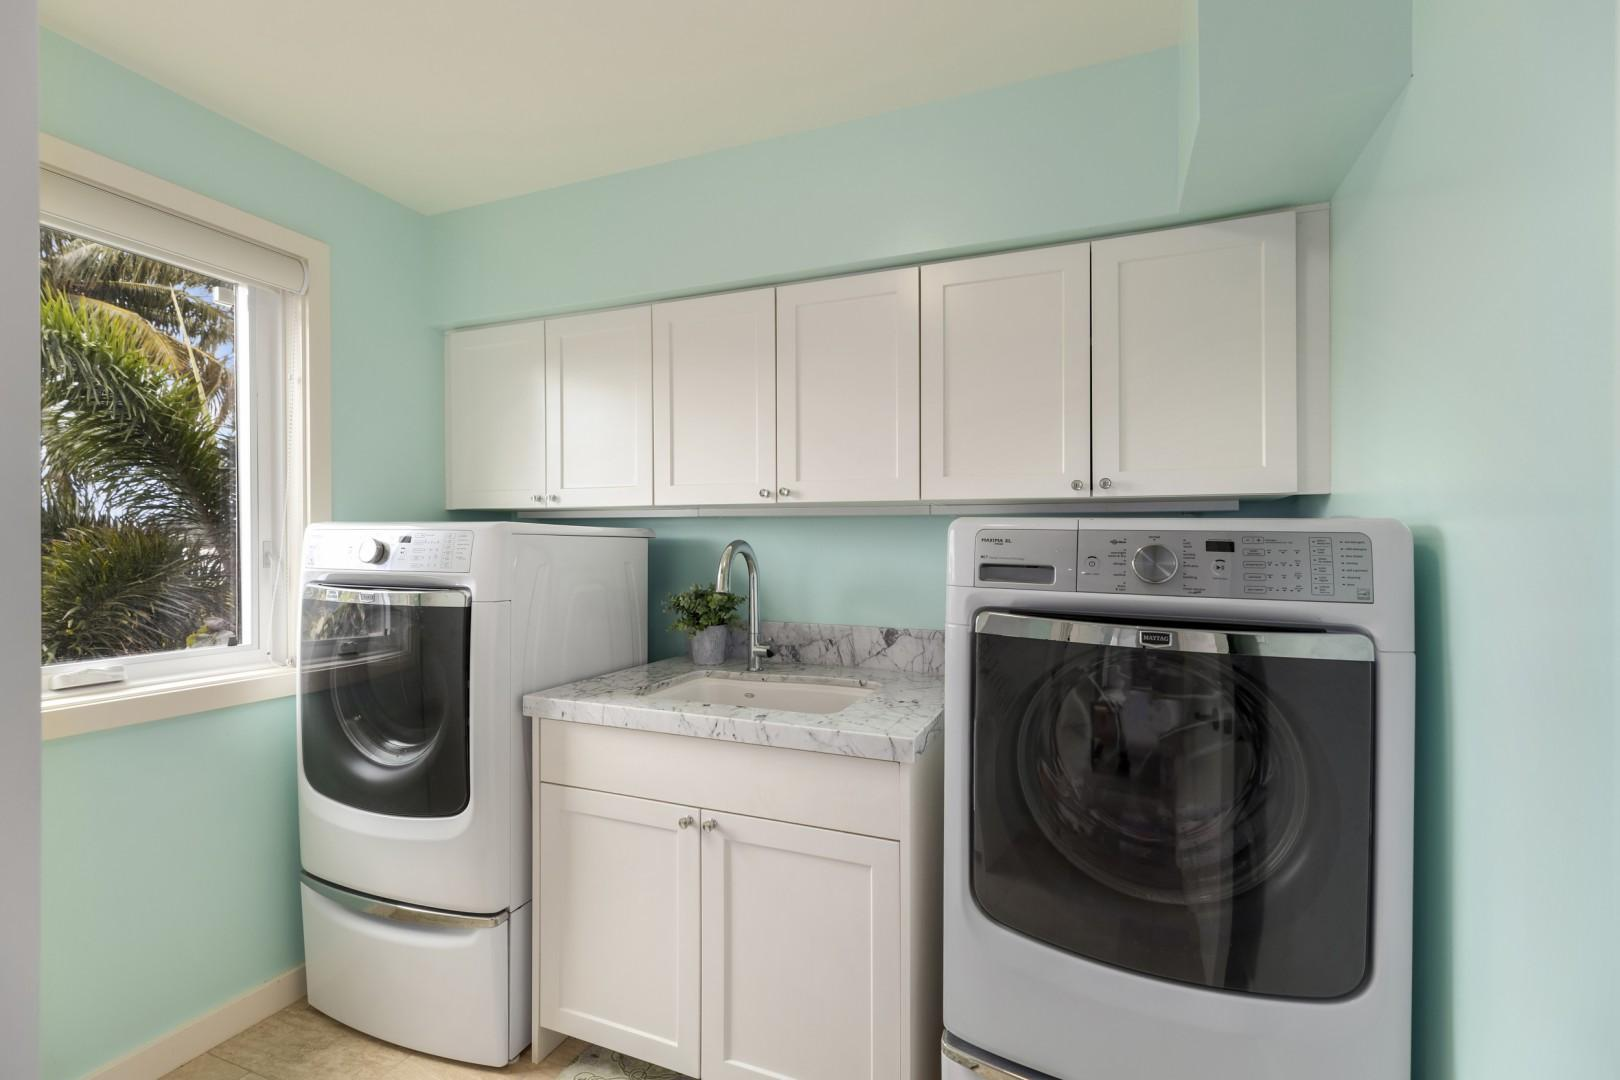 Dedicated laundry room with full-size washer and dryer.